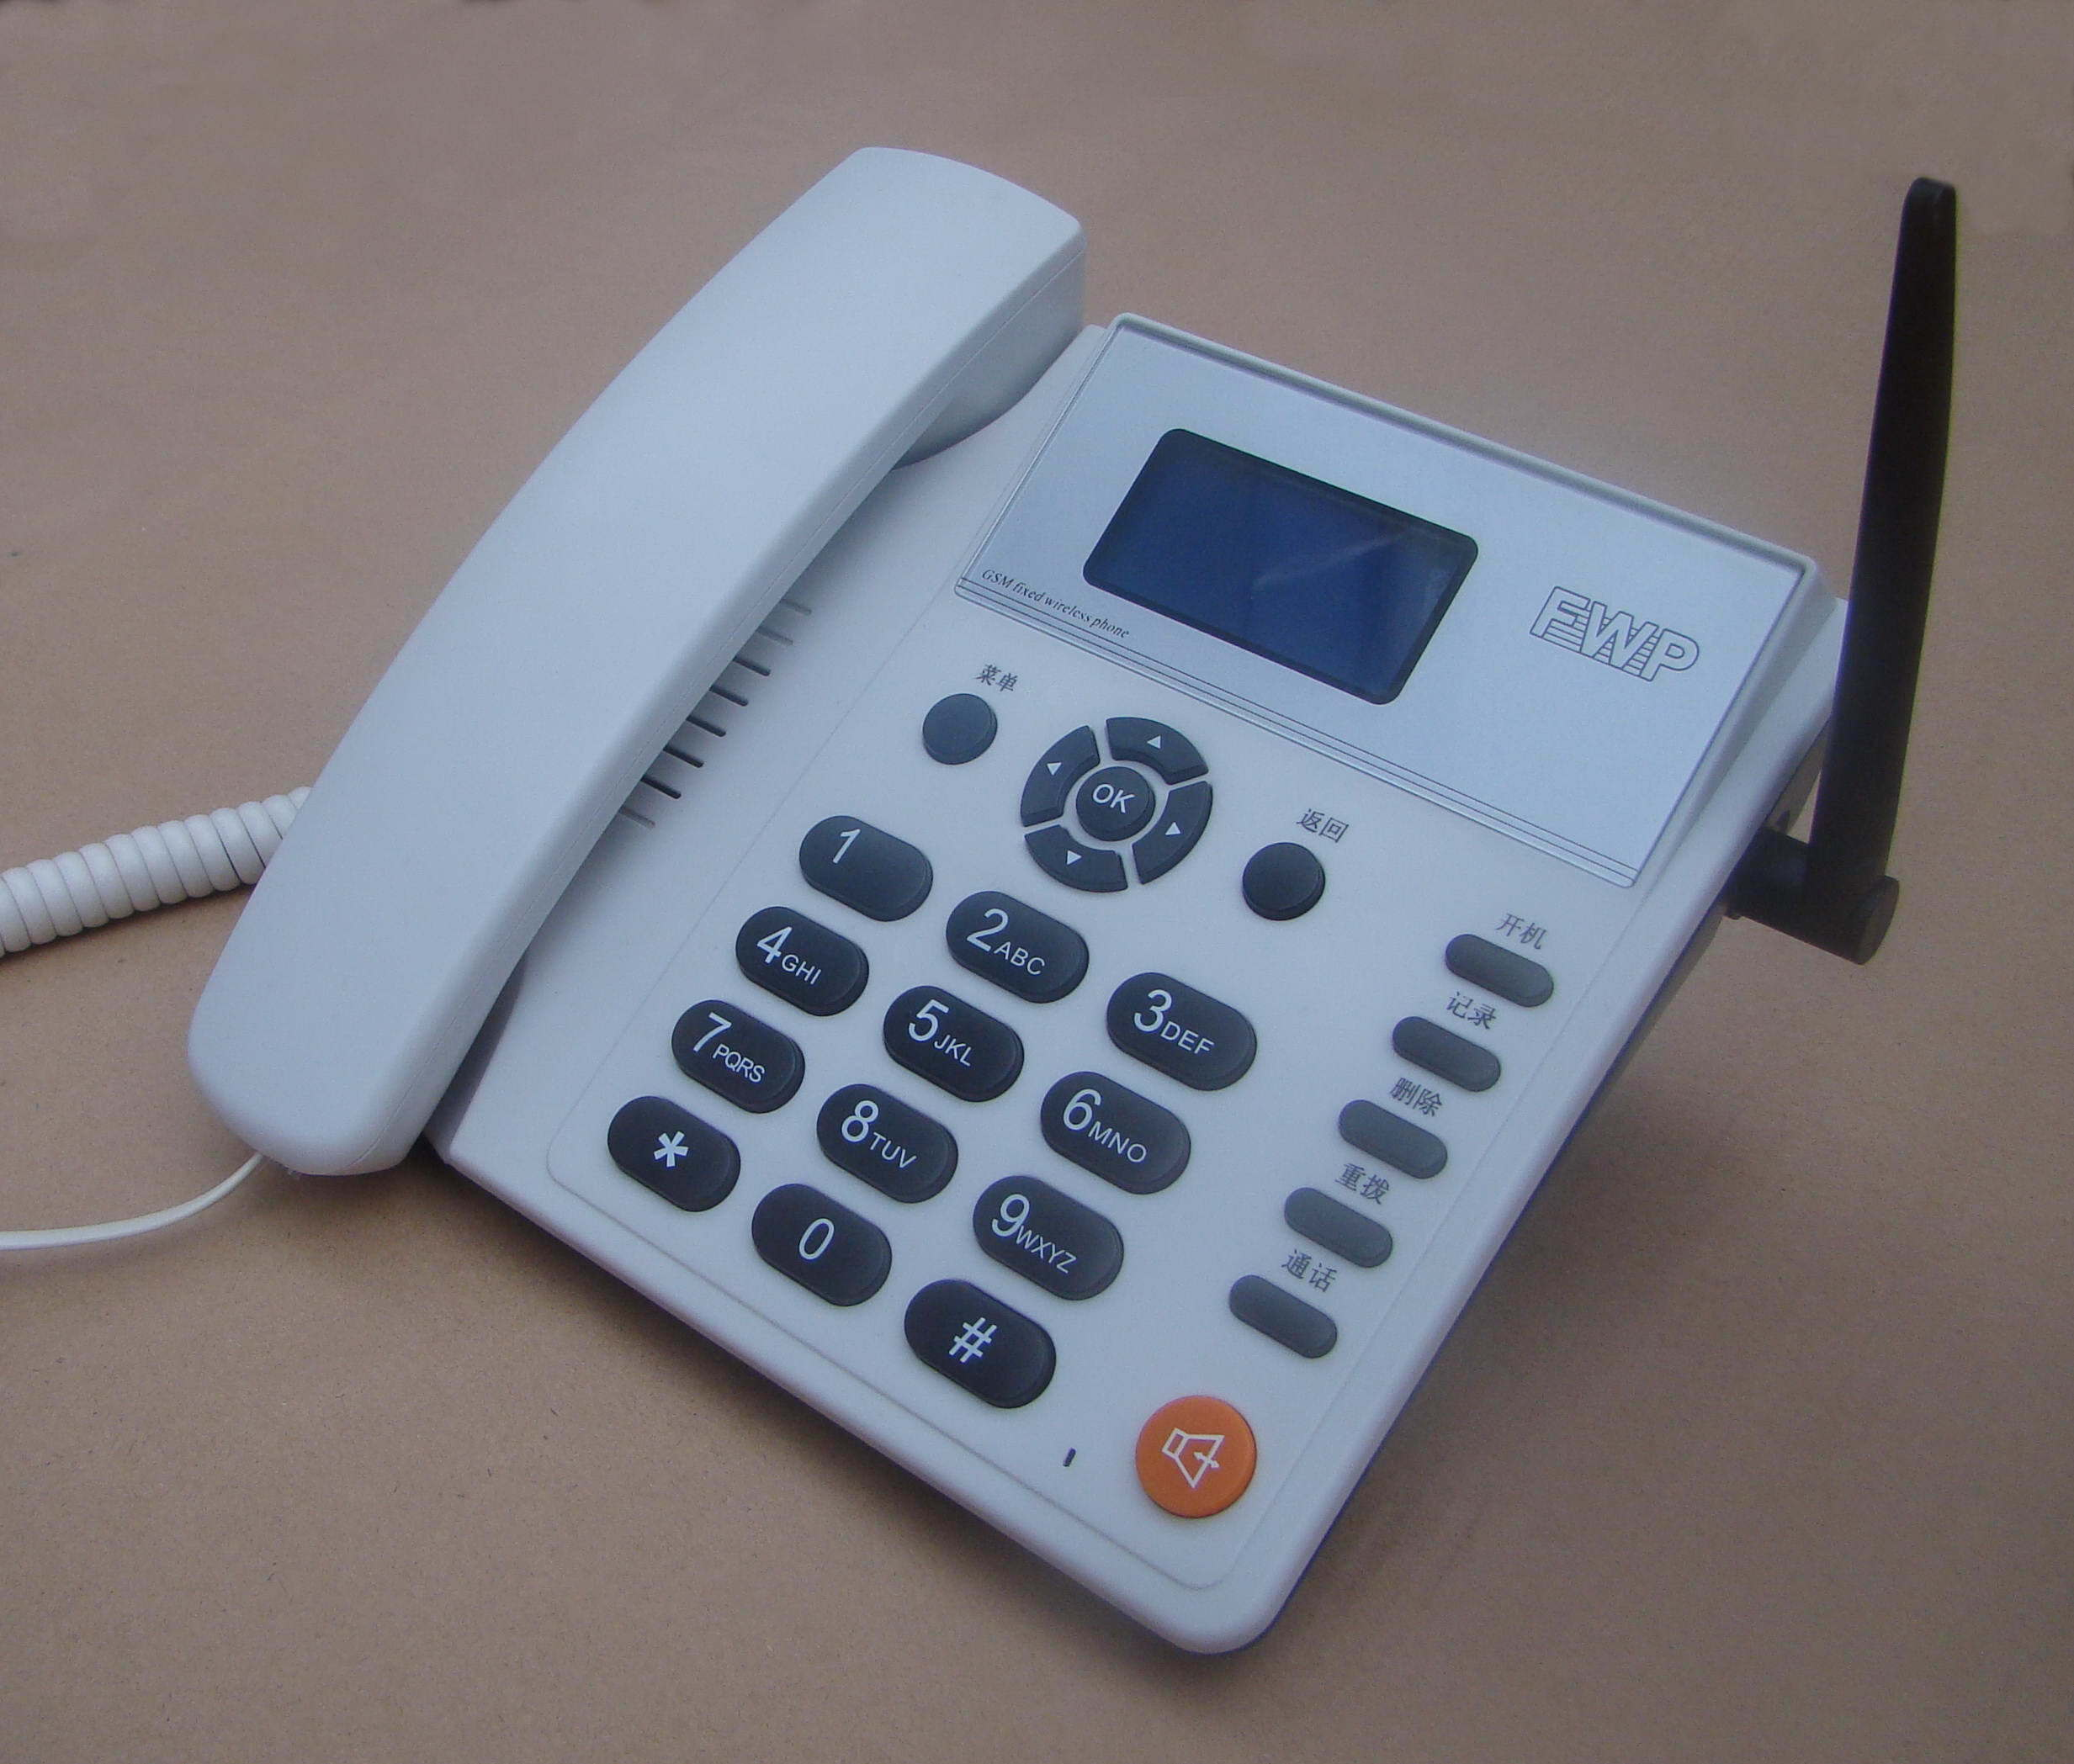 GSM 850/900/1800/1900 Wireless Office Phone with SIM Card GSM Fwp